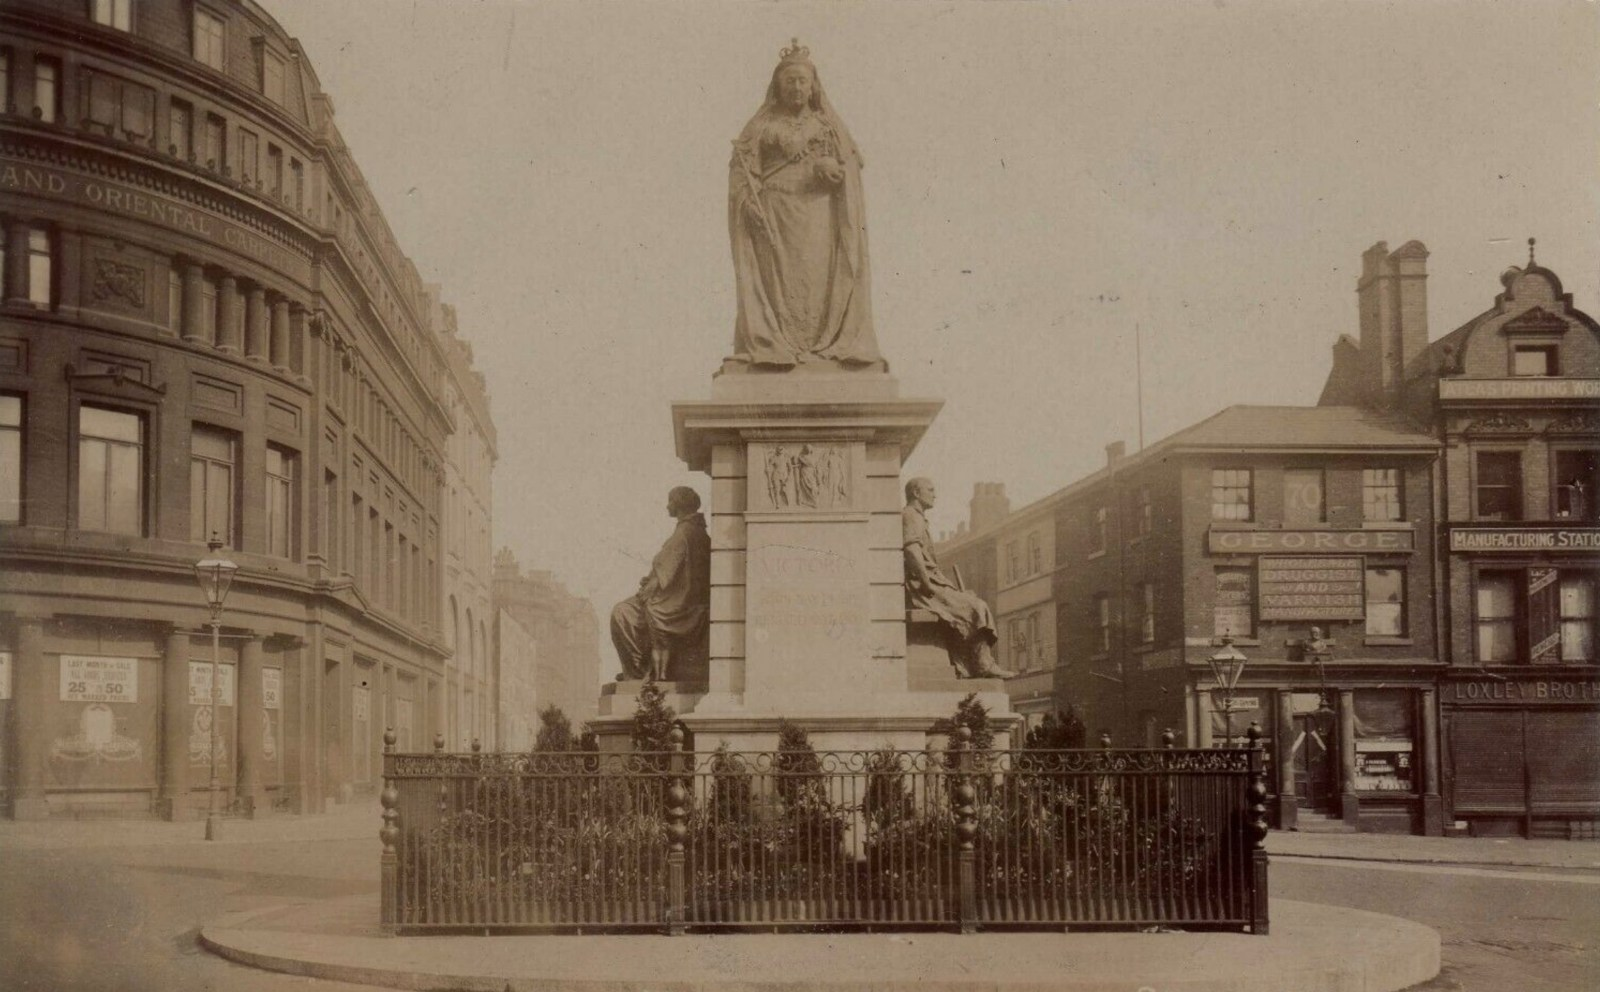 Queen Victoria Monument in Town Hall Square